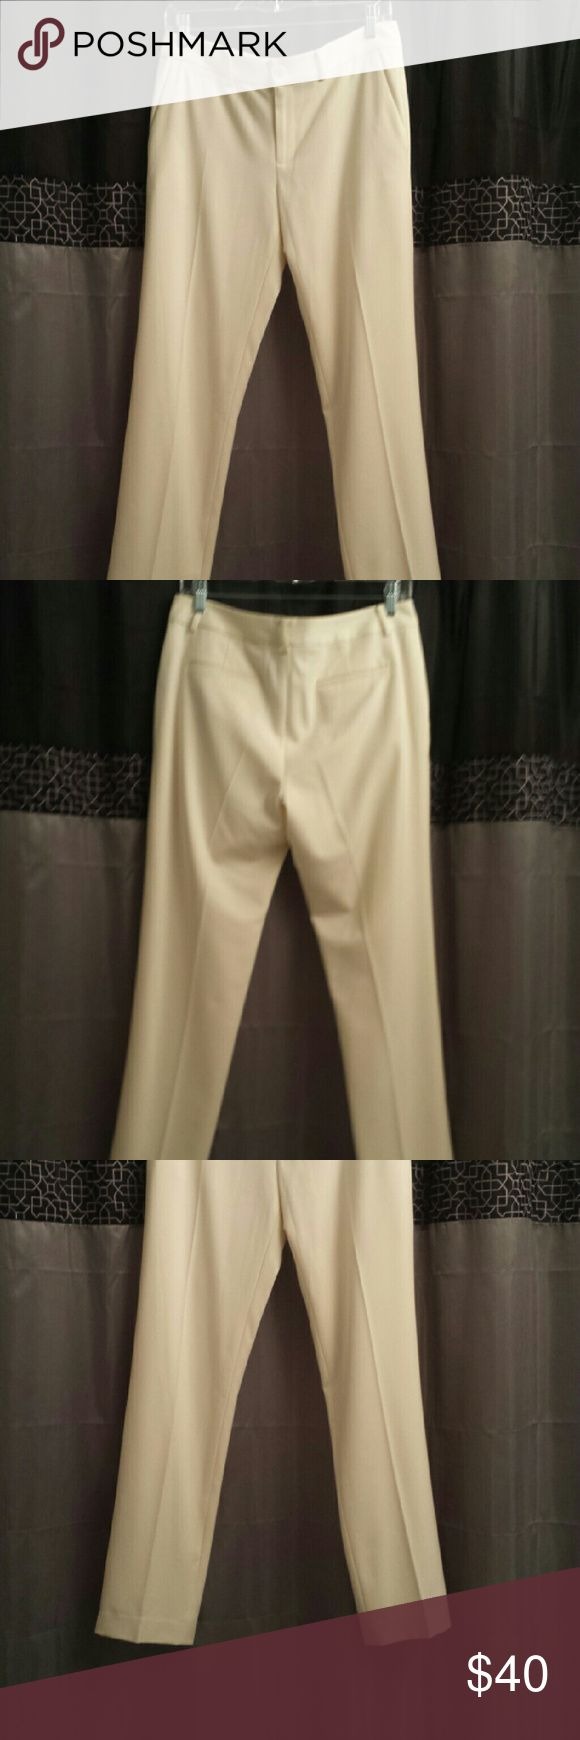 Cream trouser pants Cream colored pants by Ralph Lauren.  Size 6, lined.  Looks nice on. Ralph Lauren Pants Trousers